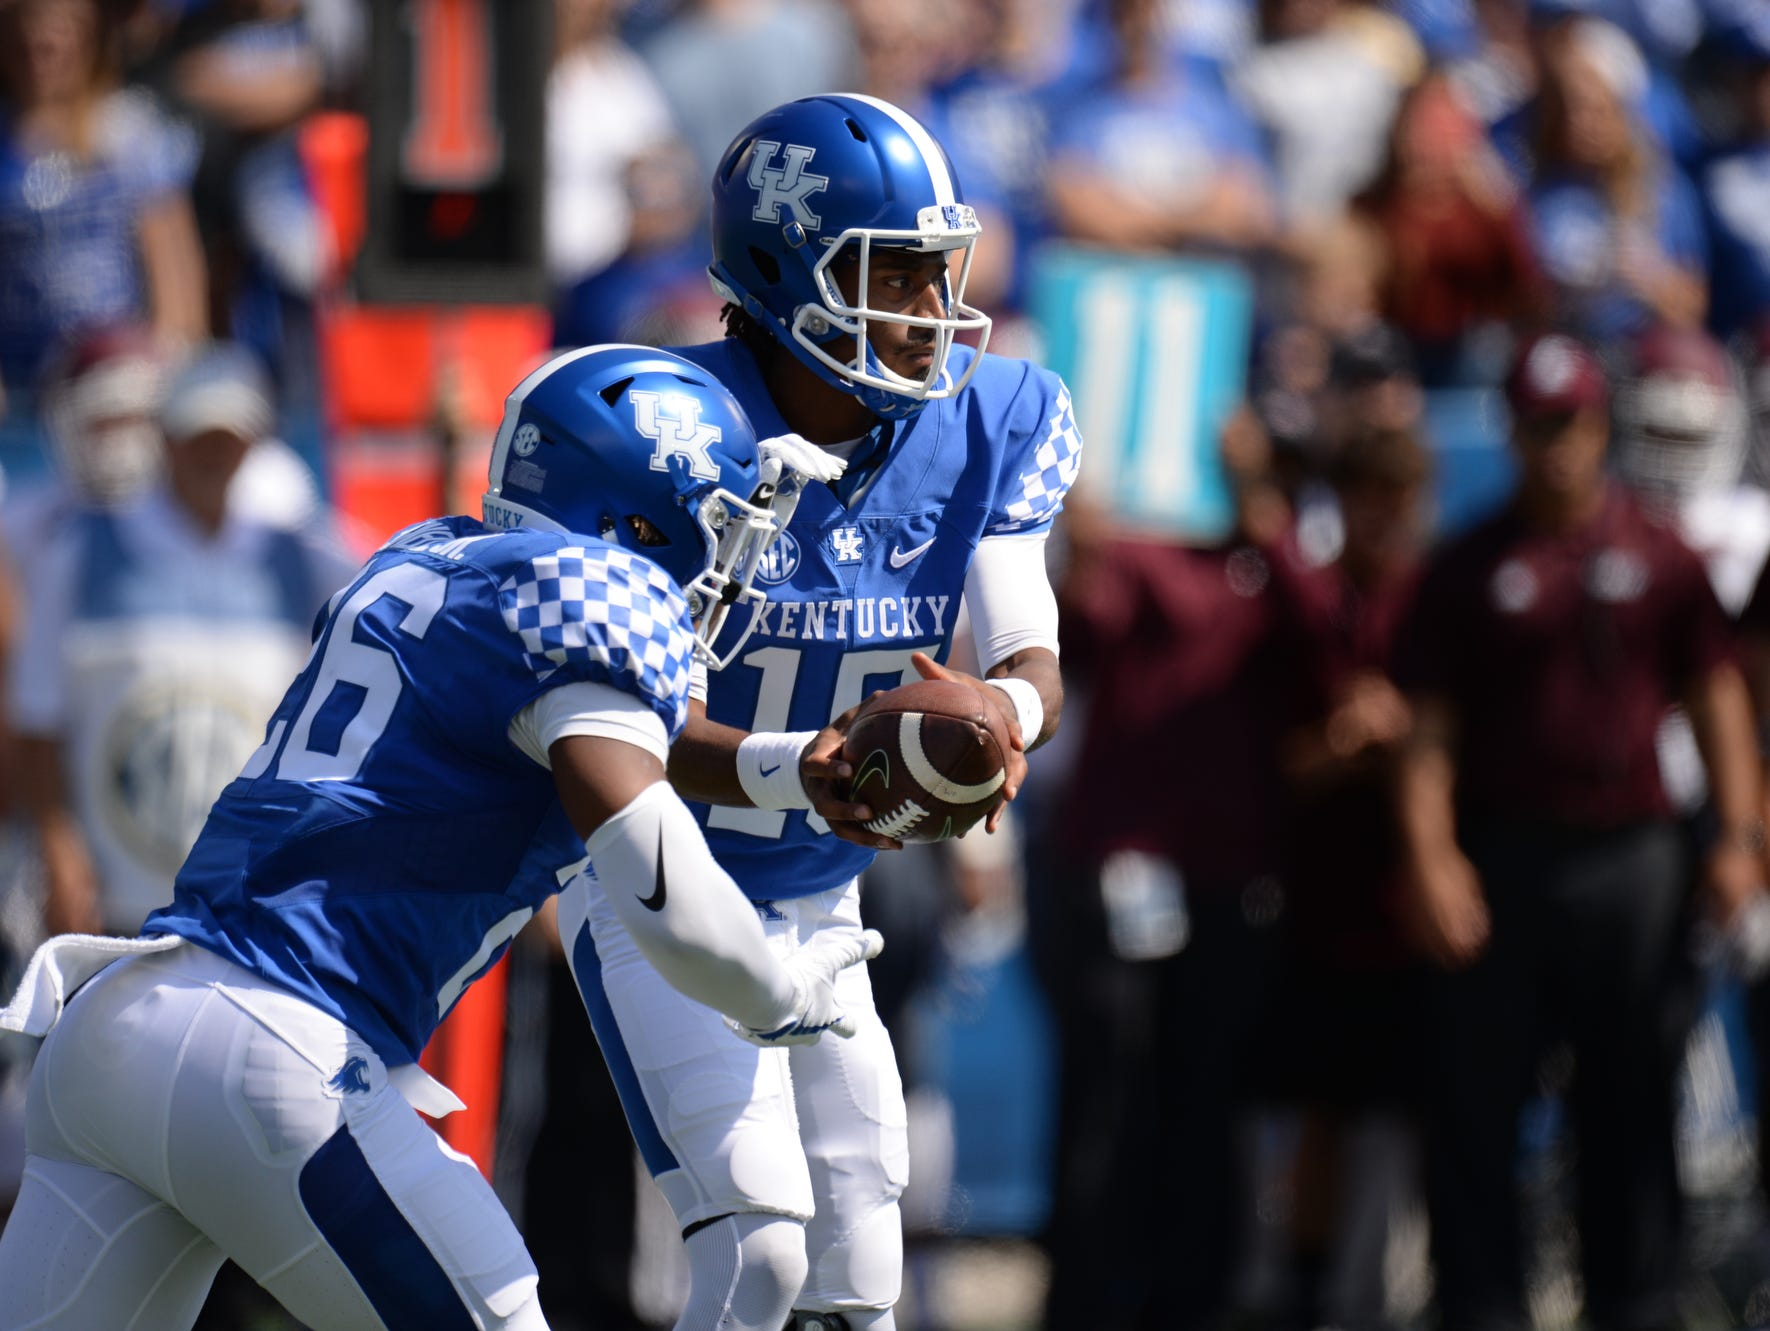 UK QB Stephen Johnson hands off the ball to RB Benny Snell Jr. during the University of Kentucky football game against Eastern Kentucky University in Lexington, KY on Saturday, September 9, 2017.